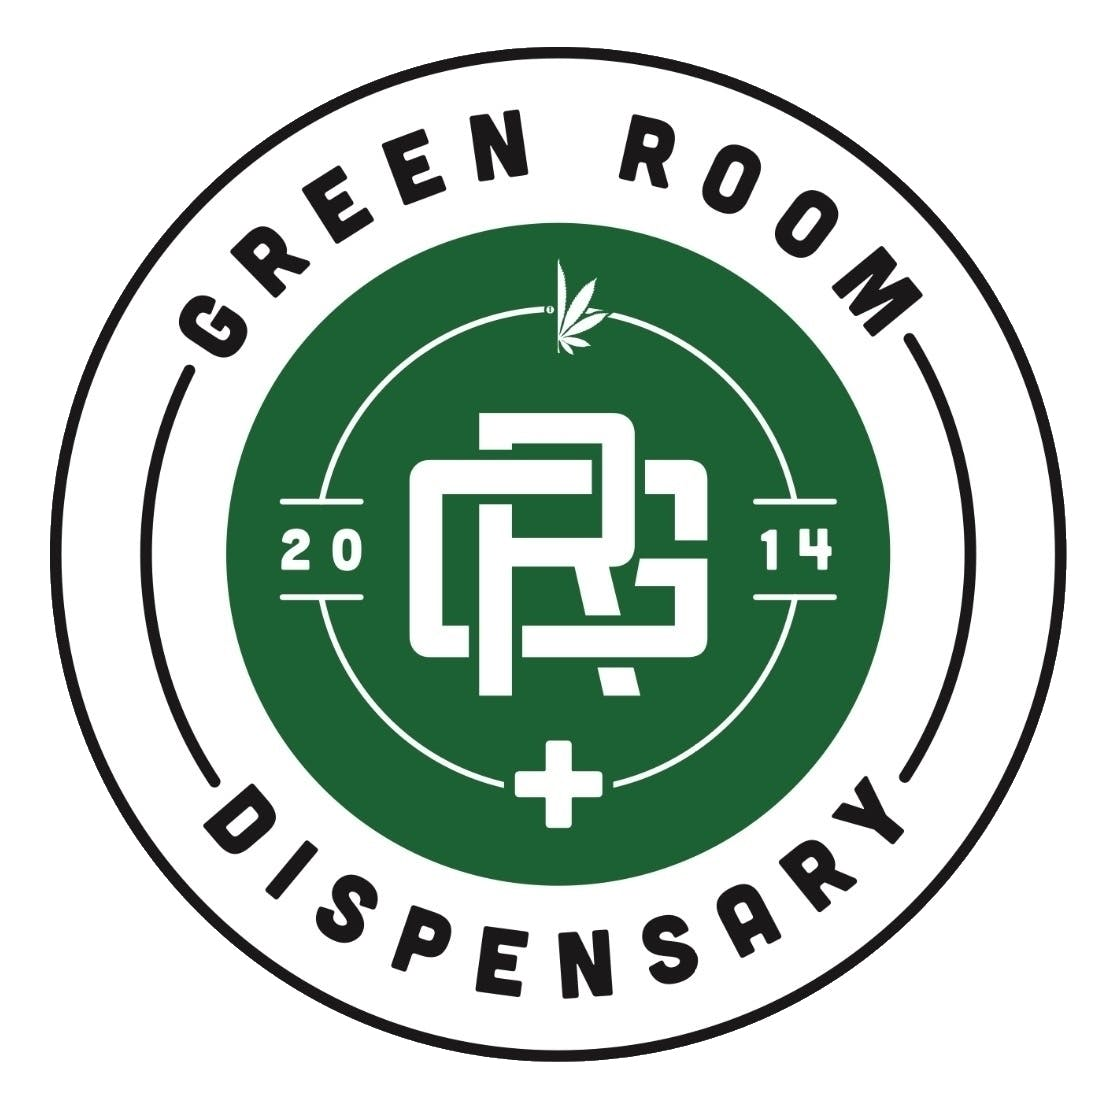 Green Room - Campus - Medical Marijuana Doctors - Cannabizme.com